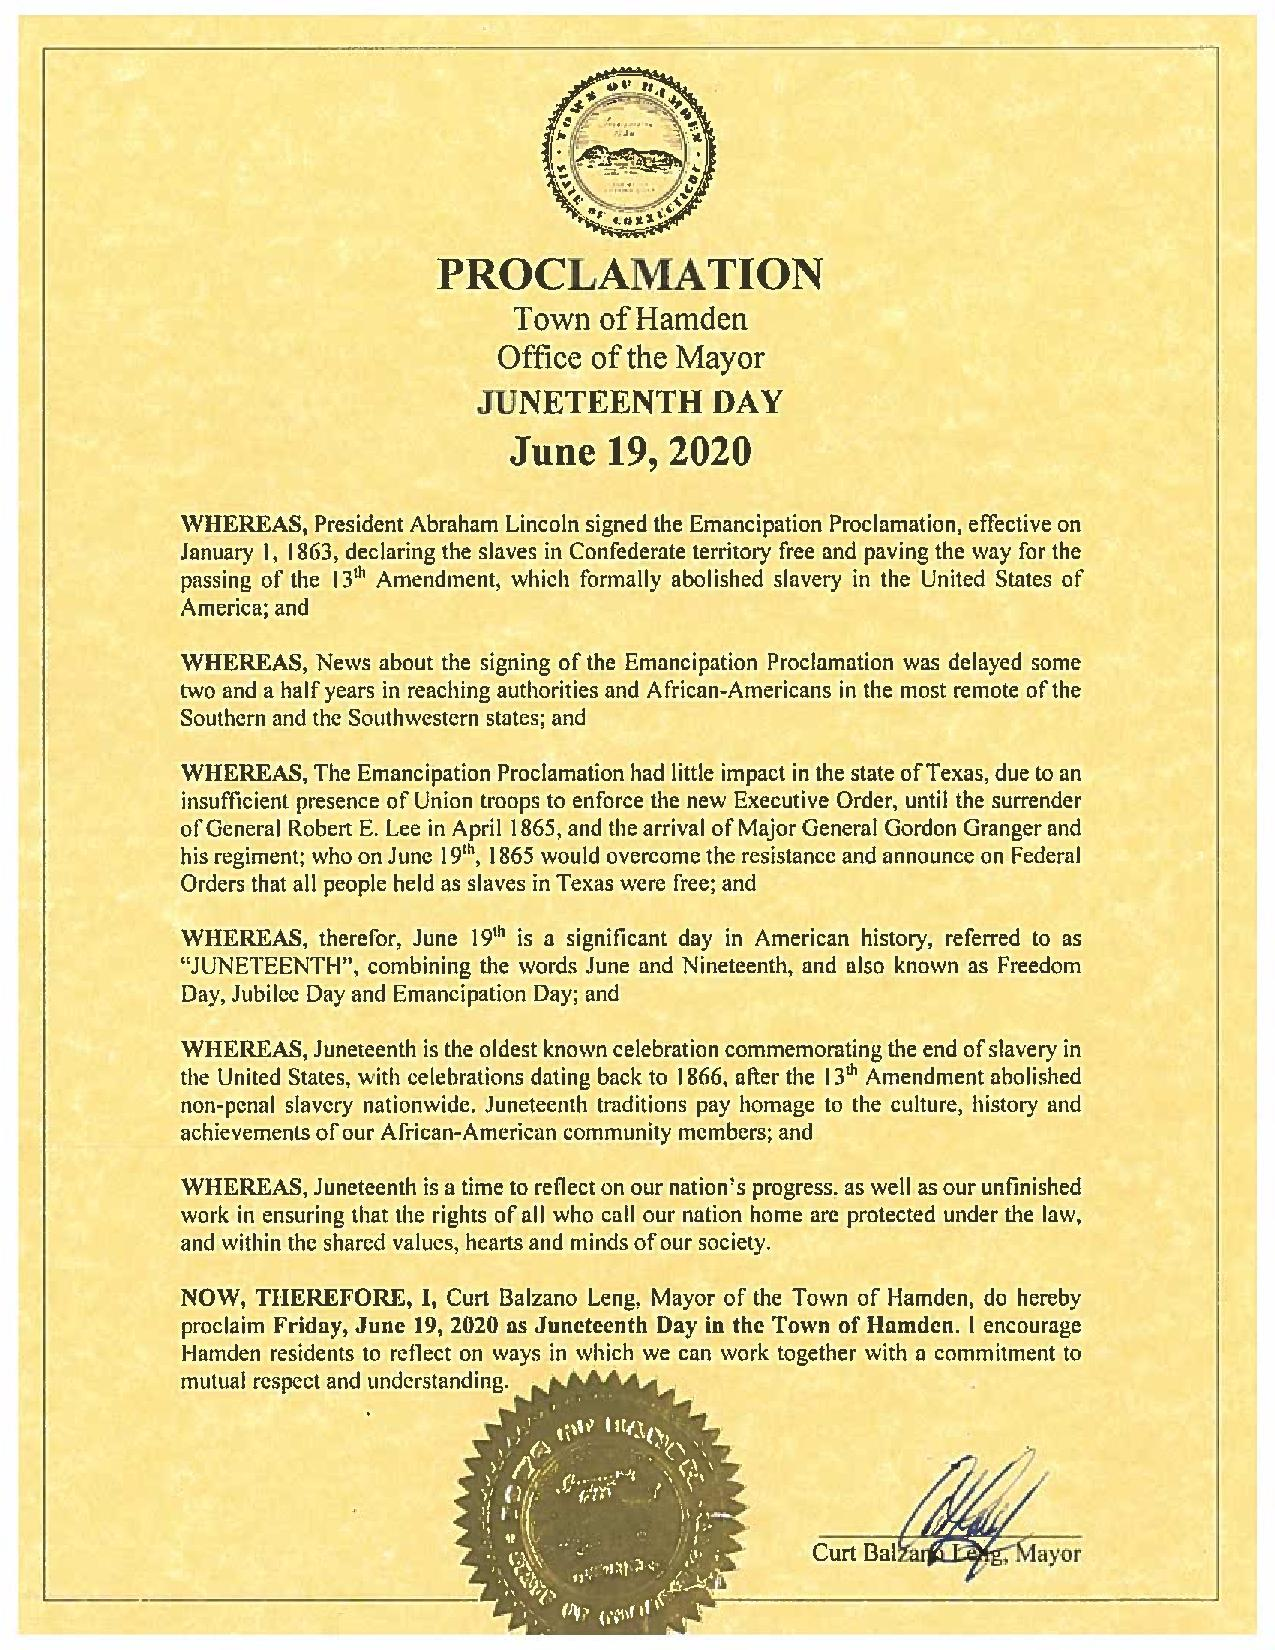 juneteenth proclamation 2020